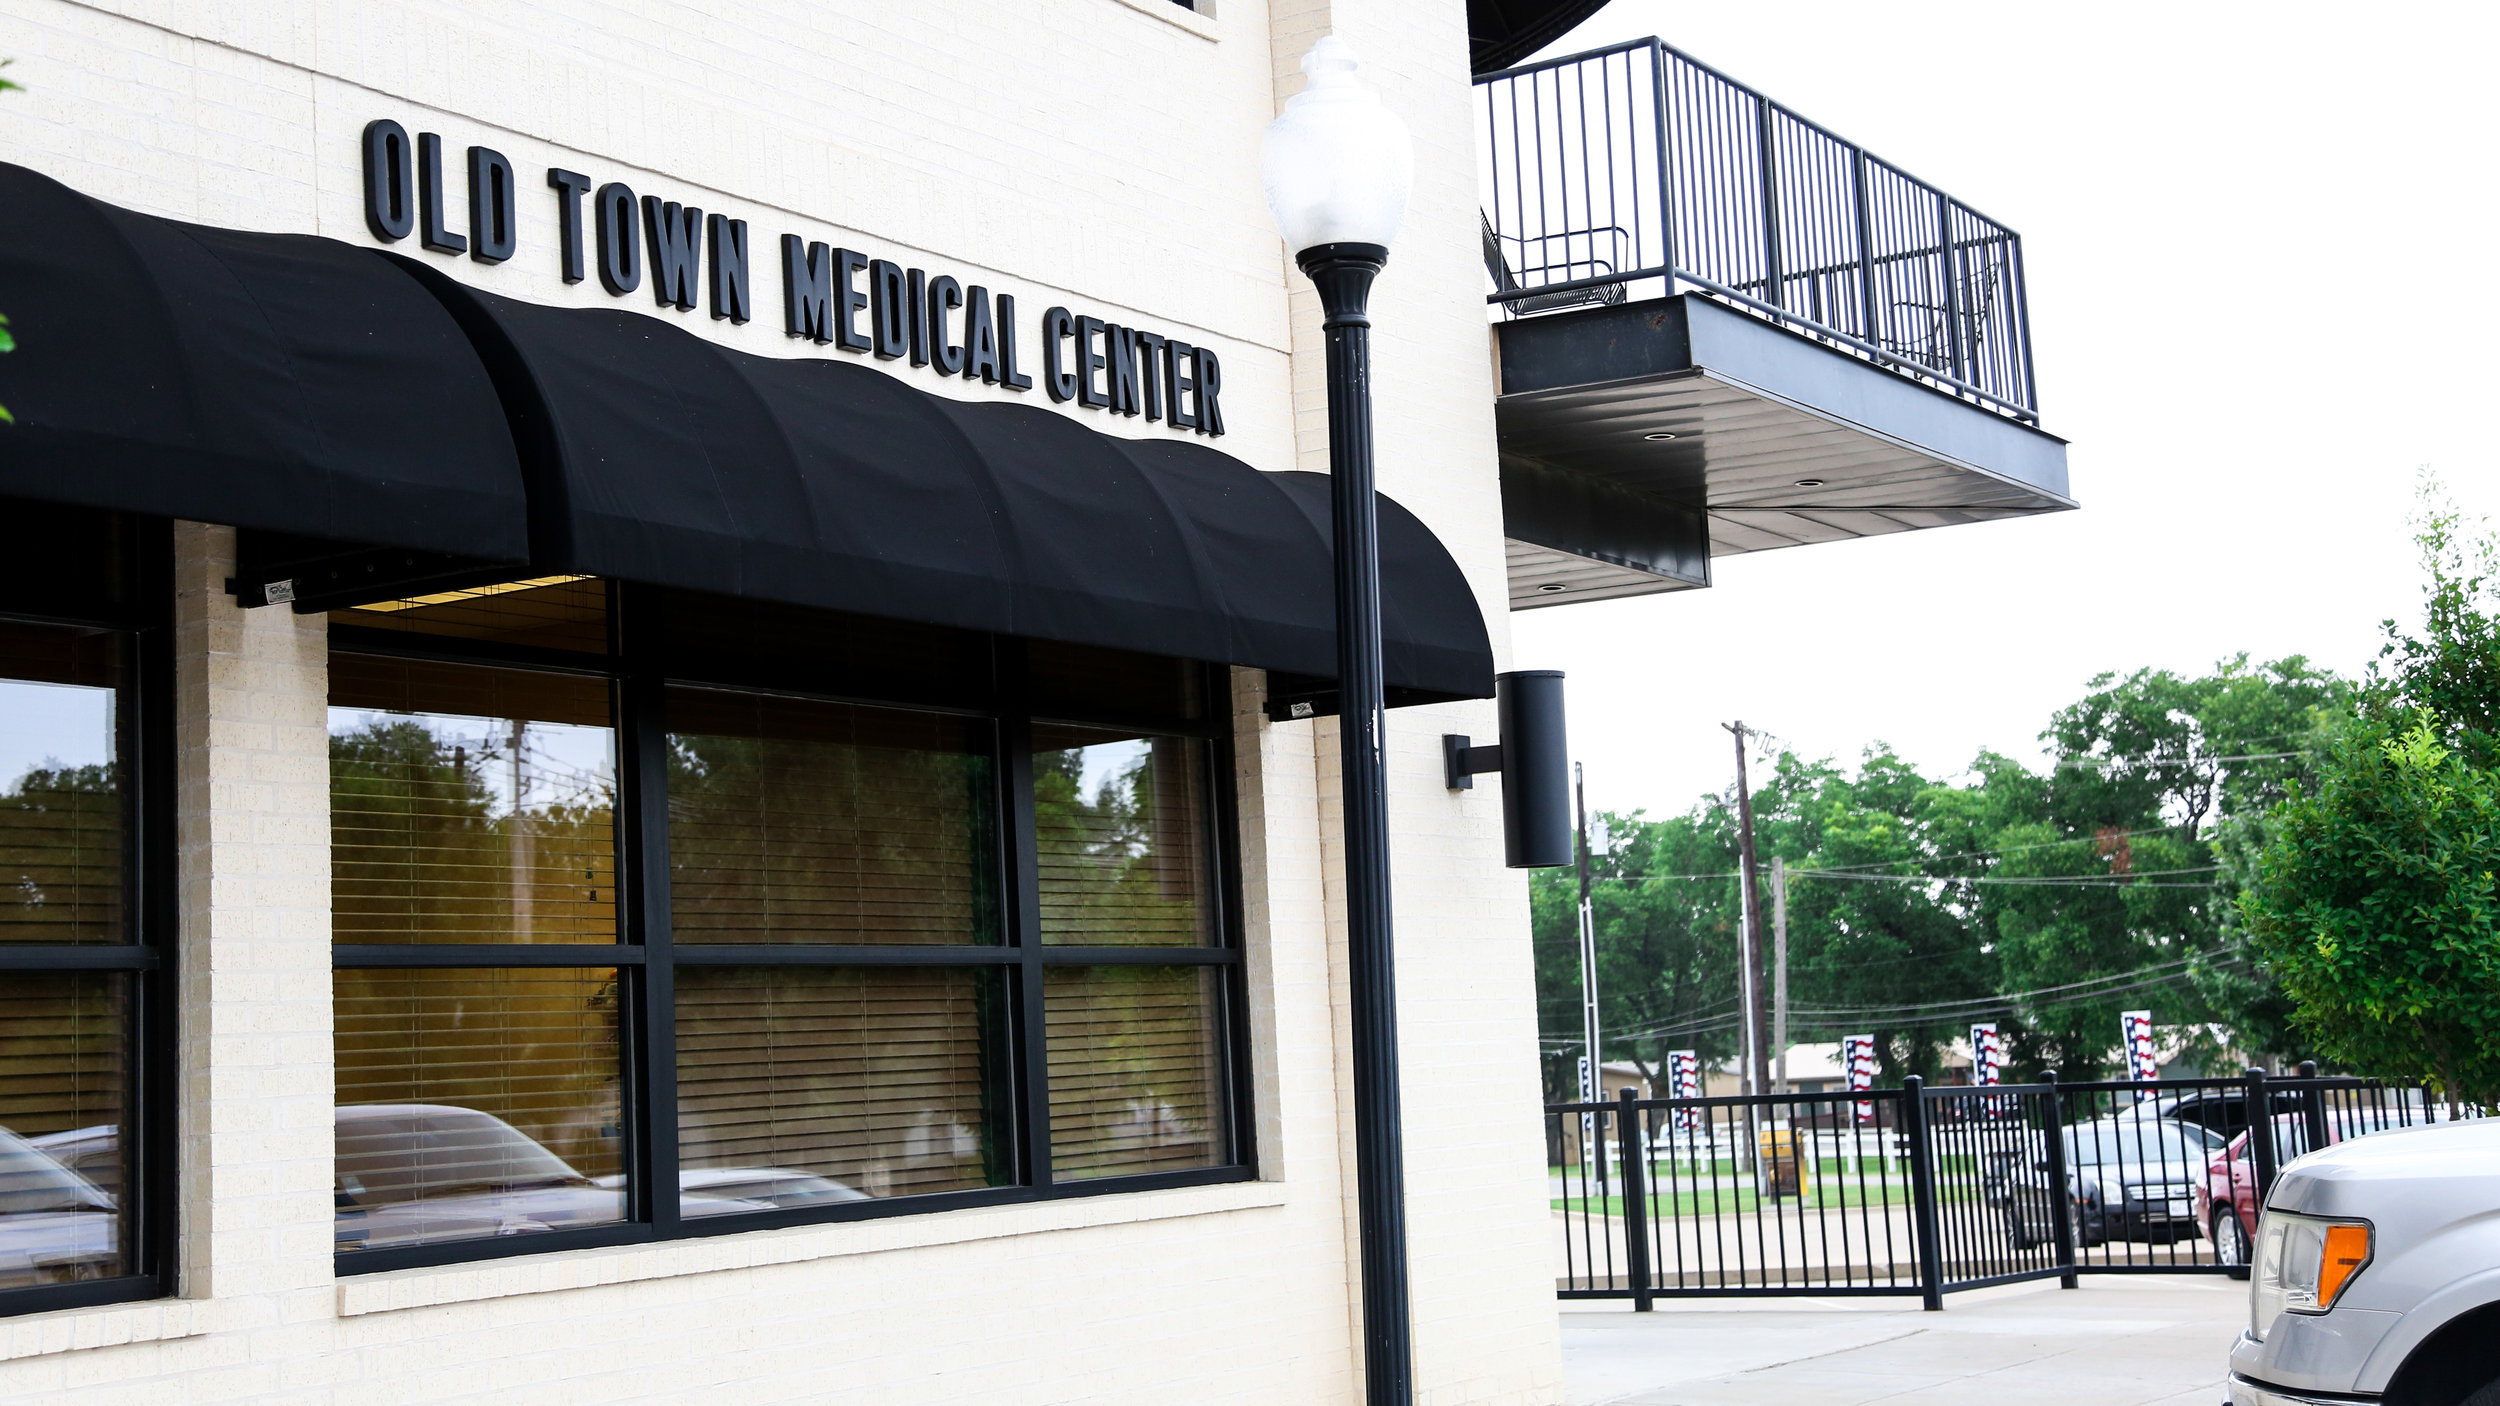 Our Practice - Our practice is located upstairs from Burleson Old Town Medical Center which Dr. Etter's team oversees. Why choose JCC? Find out more about Concierge Medicine here: